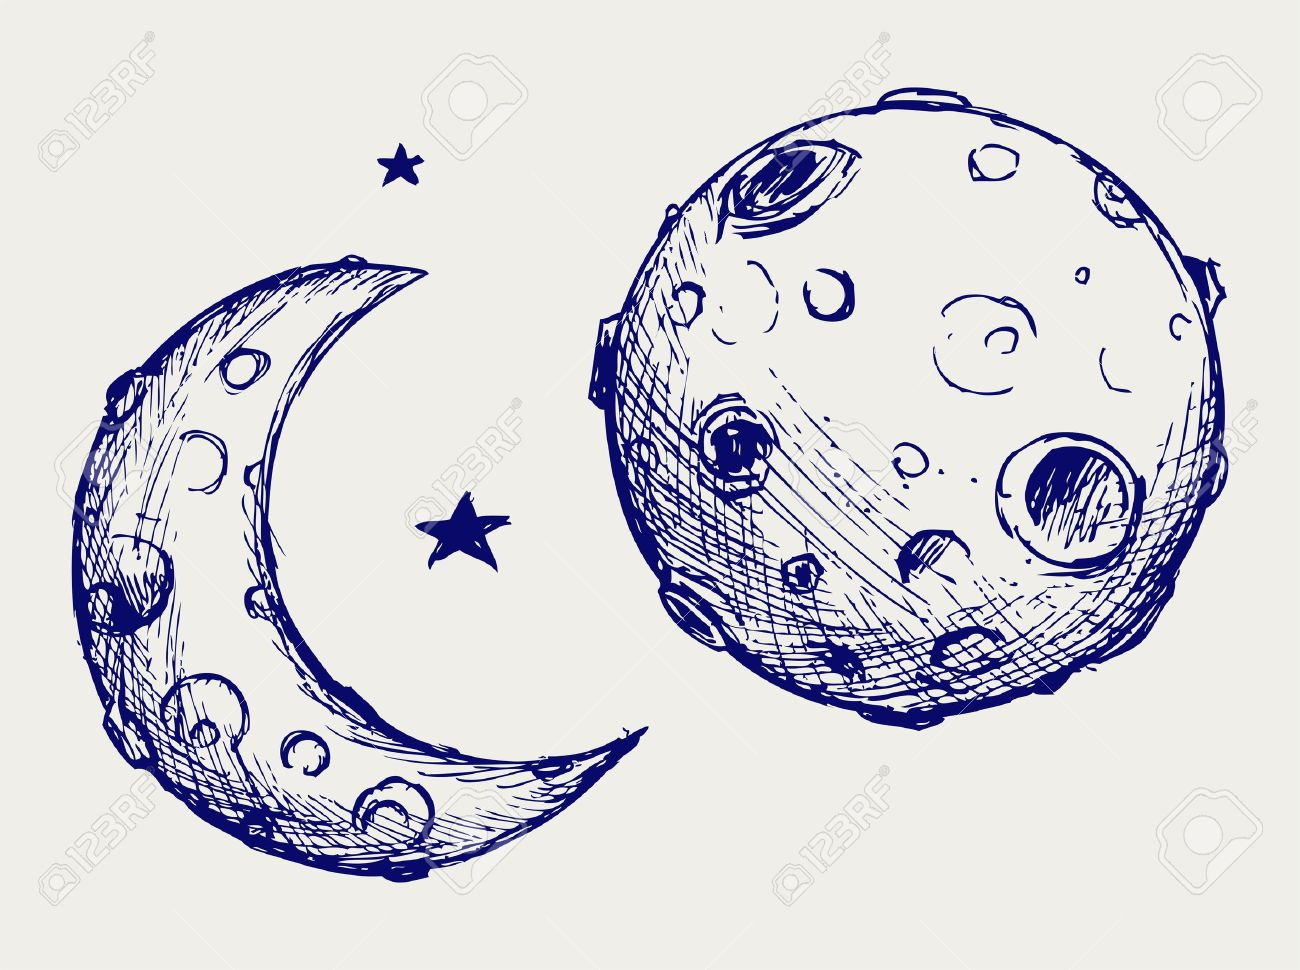 Moon And Lunar Craters. Doodle Style Royalty Free Cliparts.